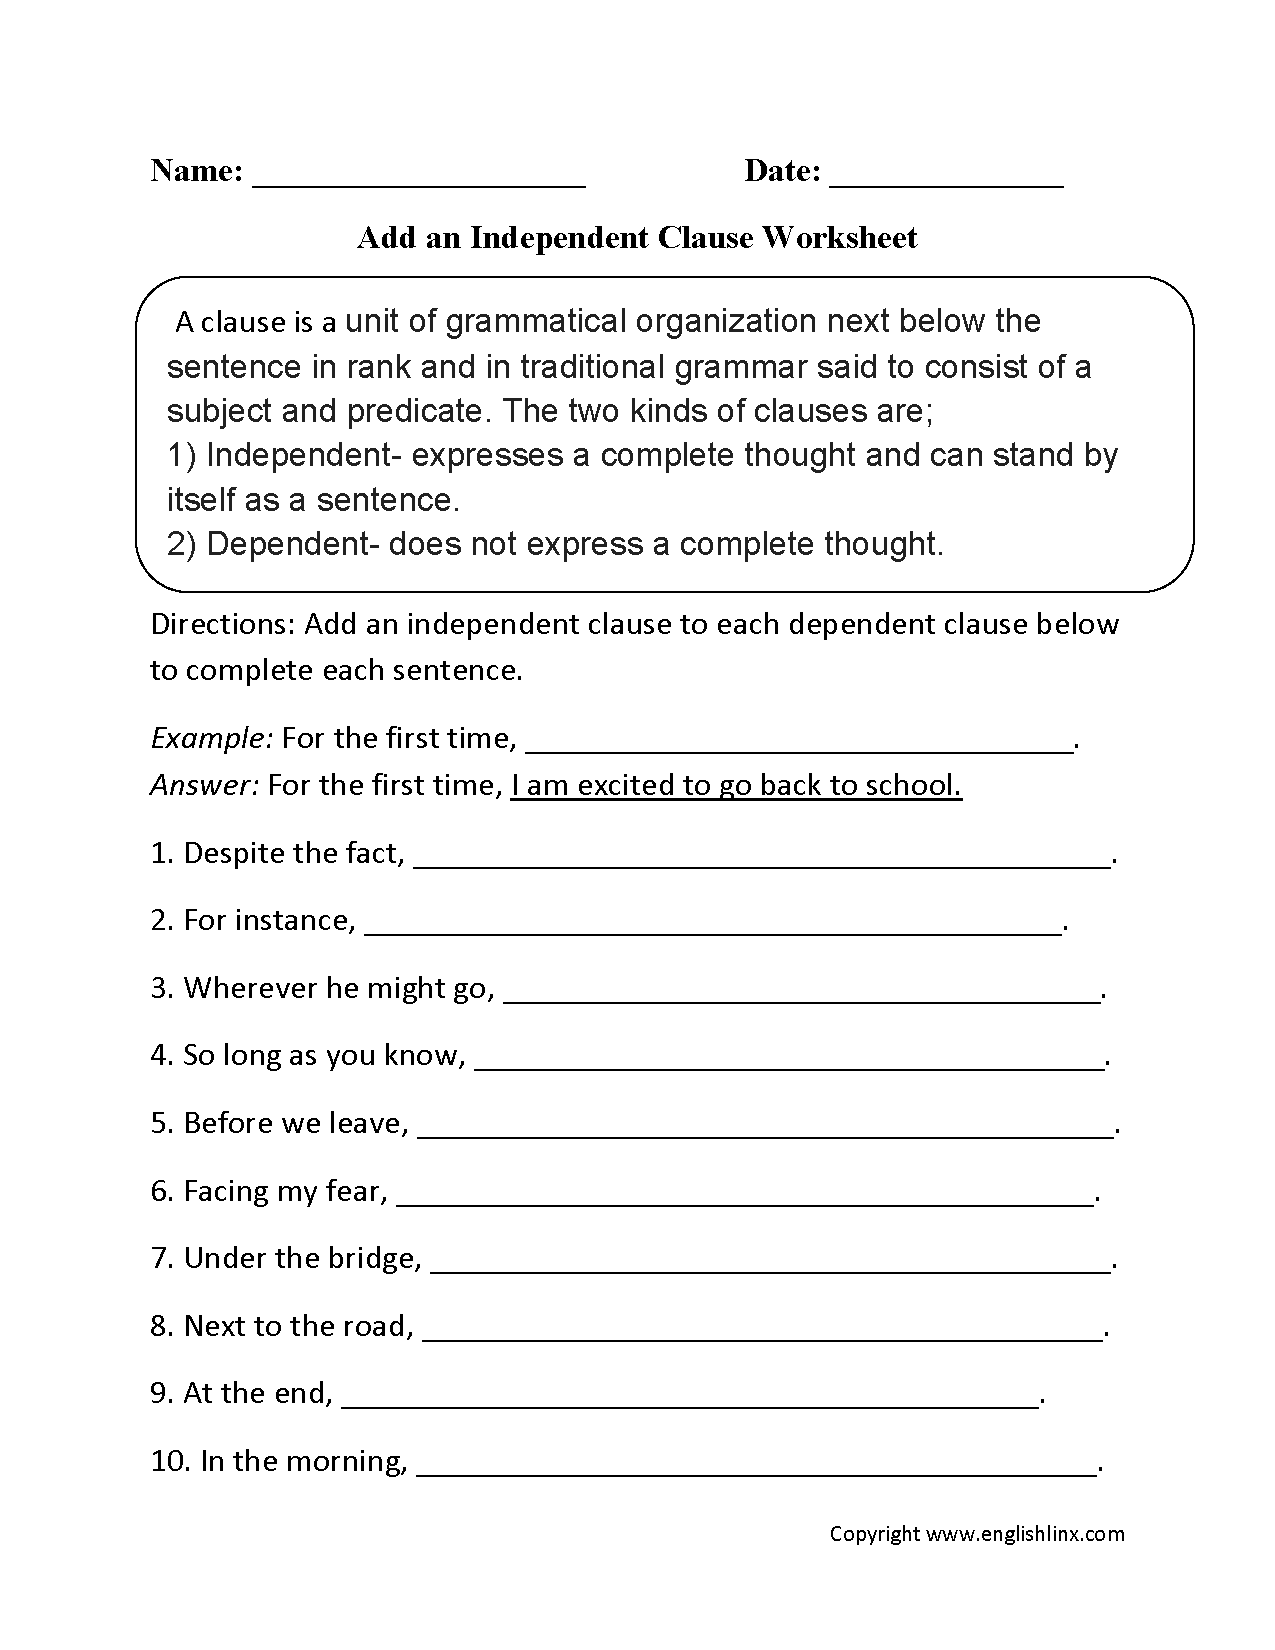 Add Independent Clause Worksheets